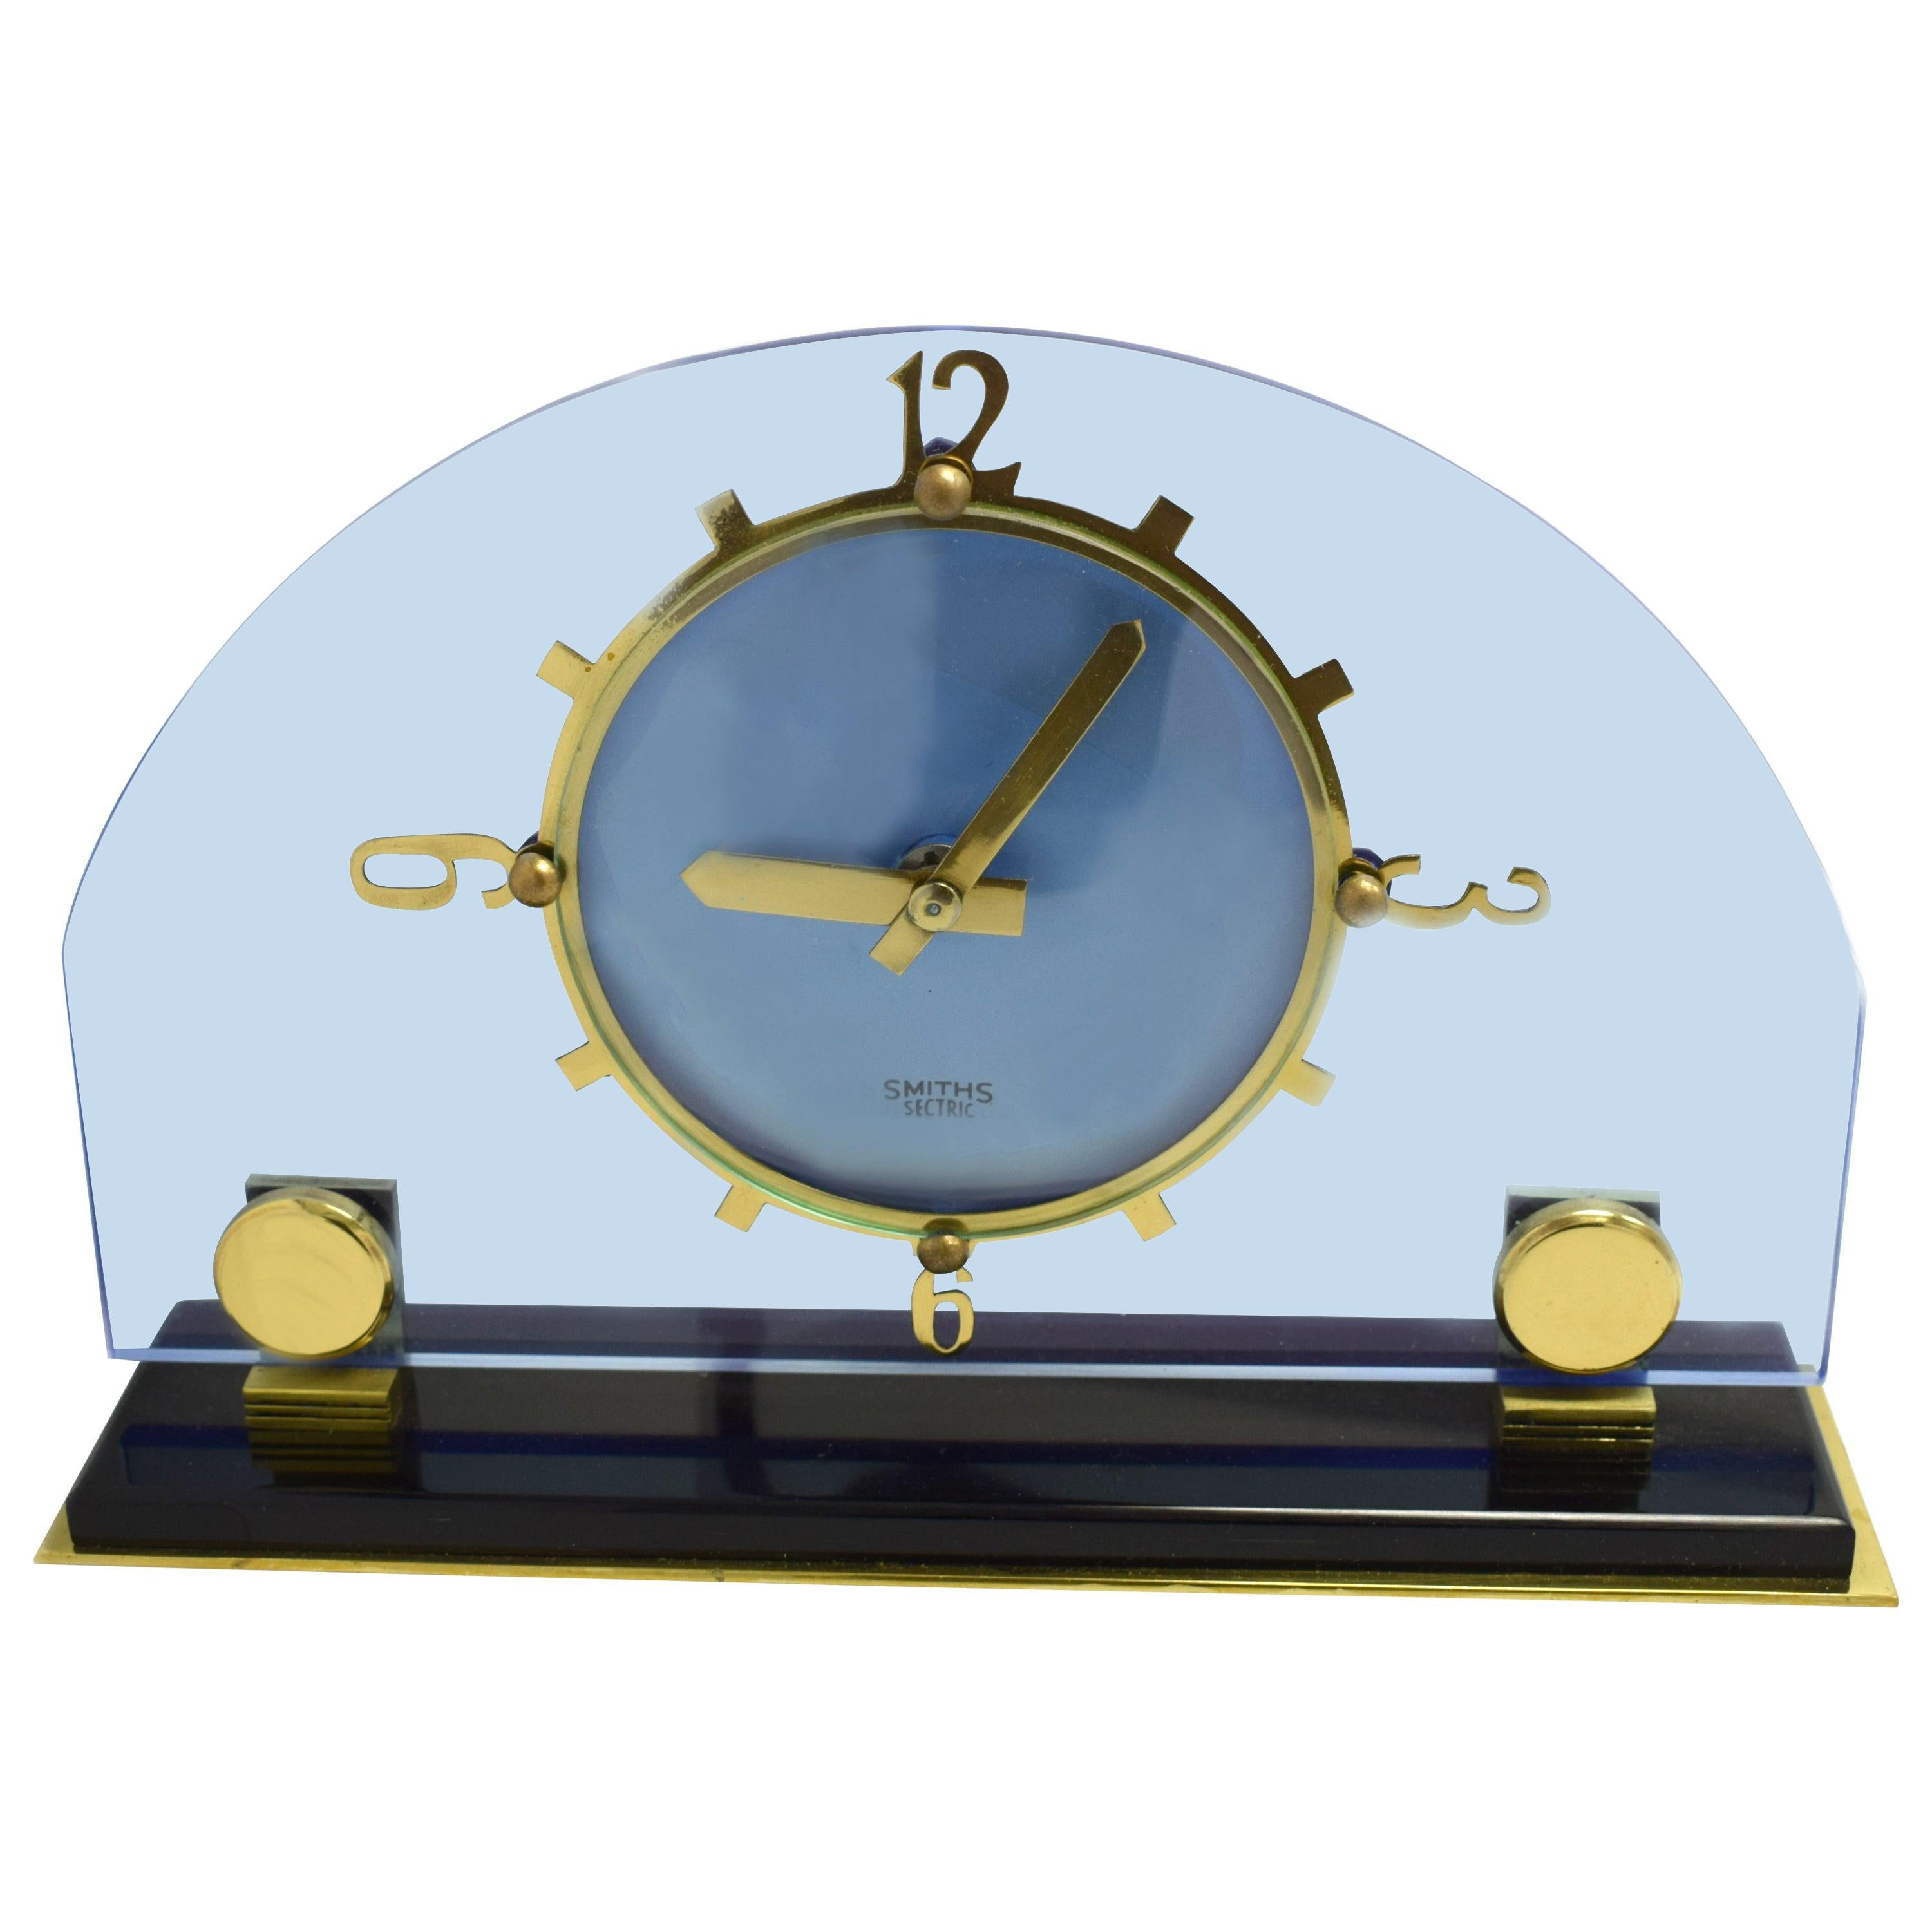 Art Deco Blue Electric Mantle Clock by Smiths